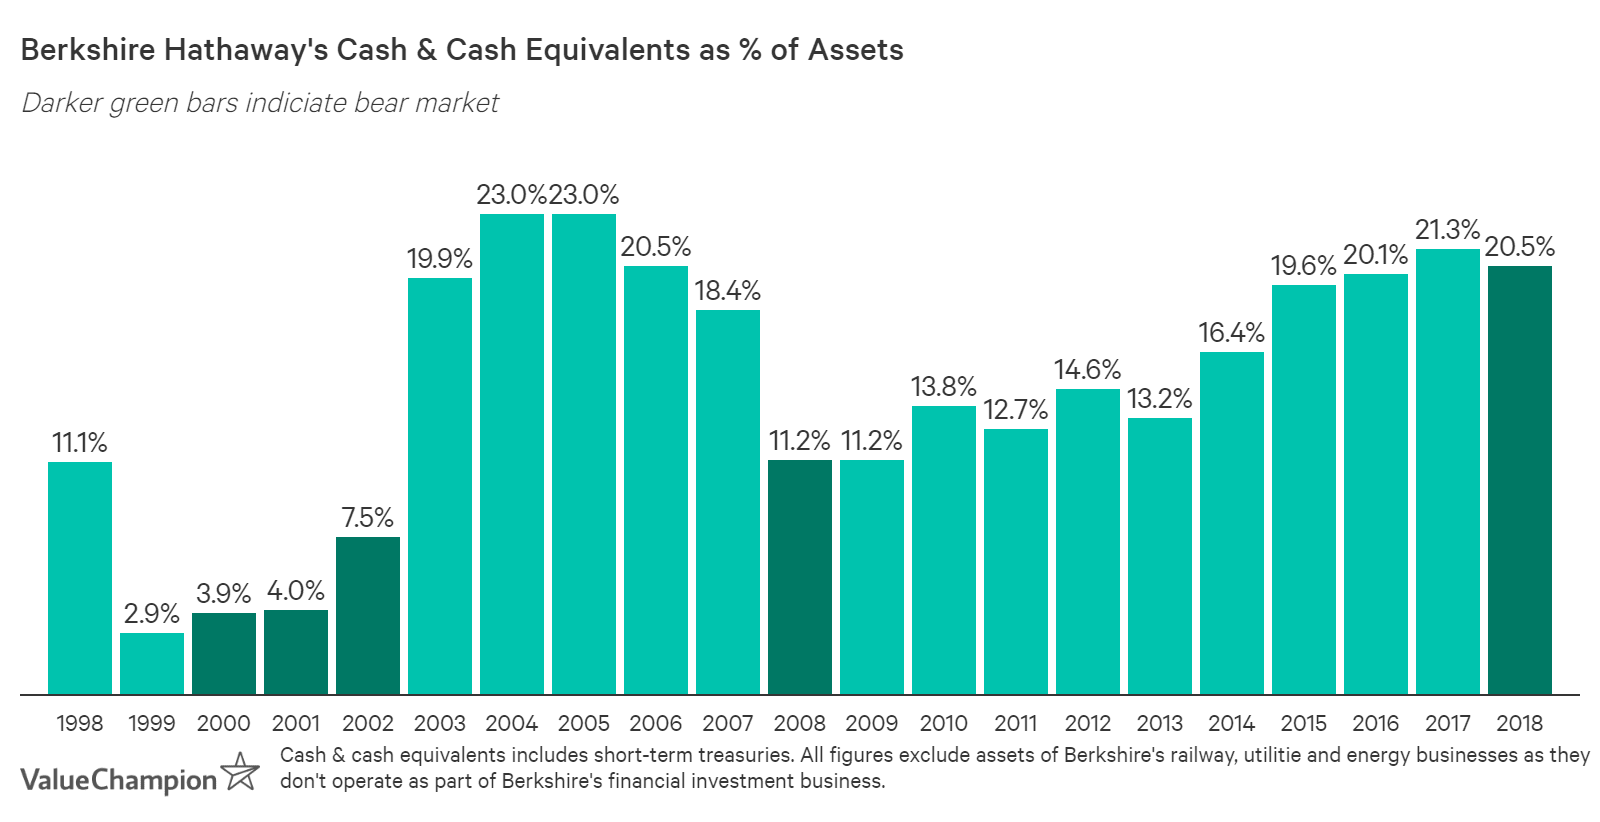 Berkshire Hathaway's cash reserve has stayed elevated at more than 20% of assets since 2015